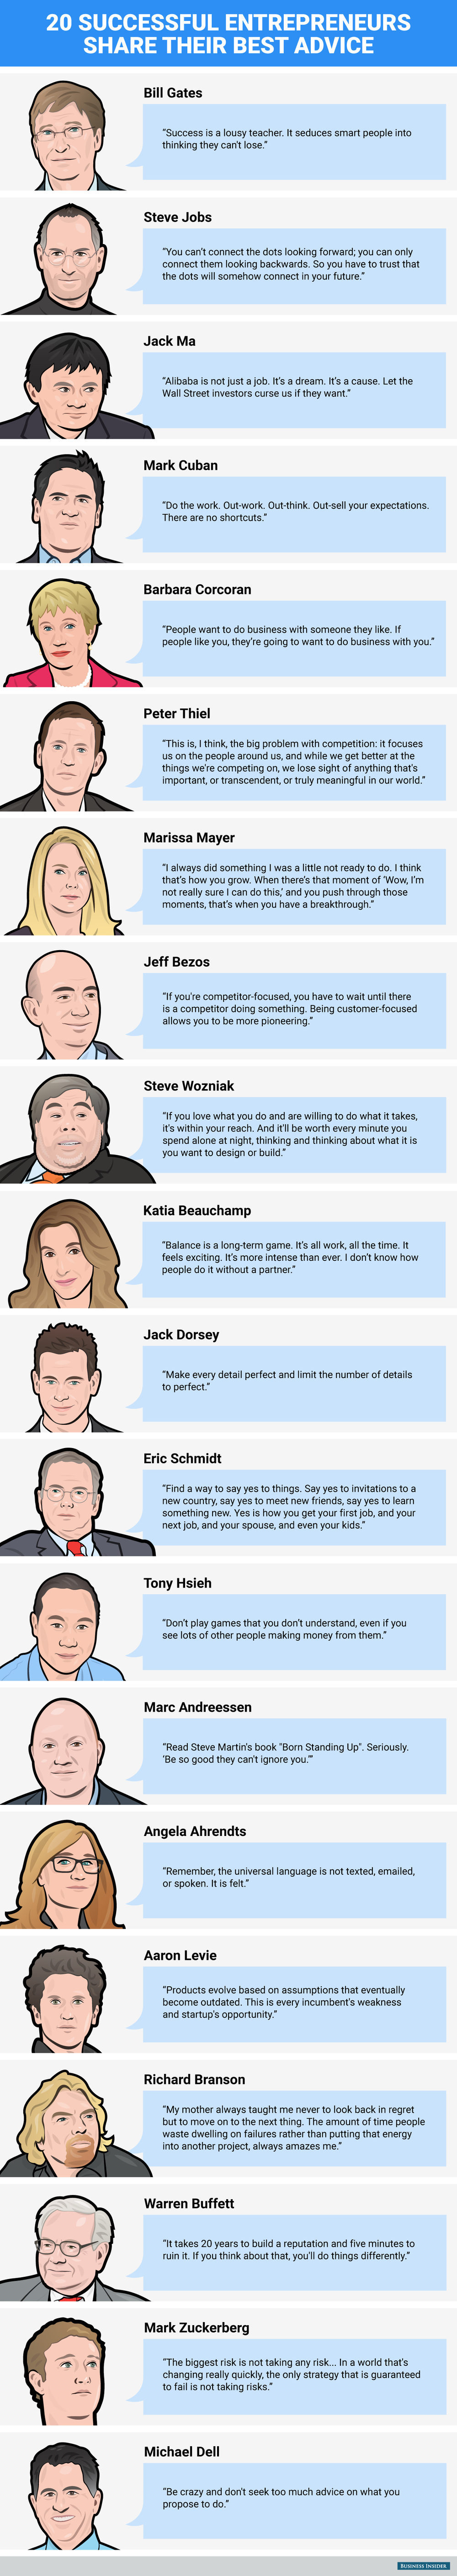 Successful Entrepreneurs Share Their Best Advise On Decision Making